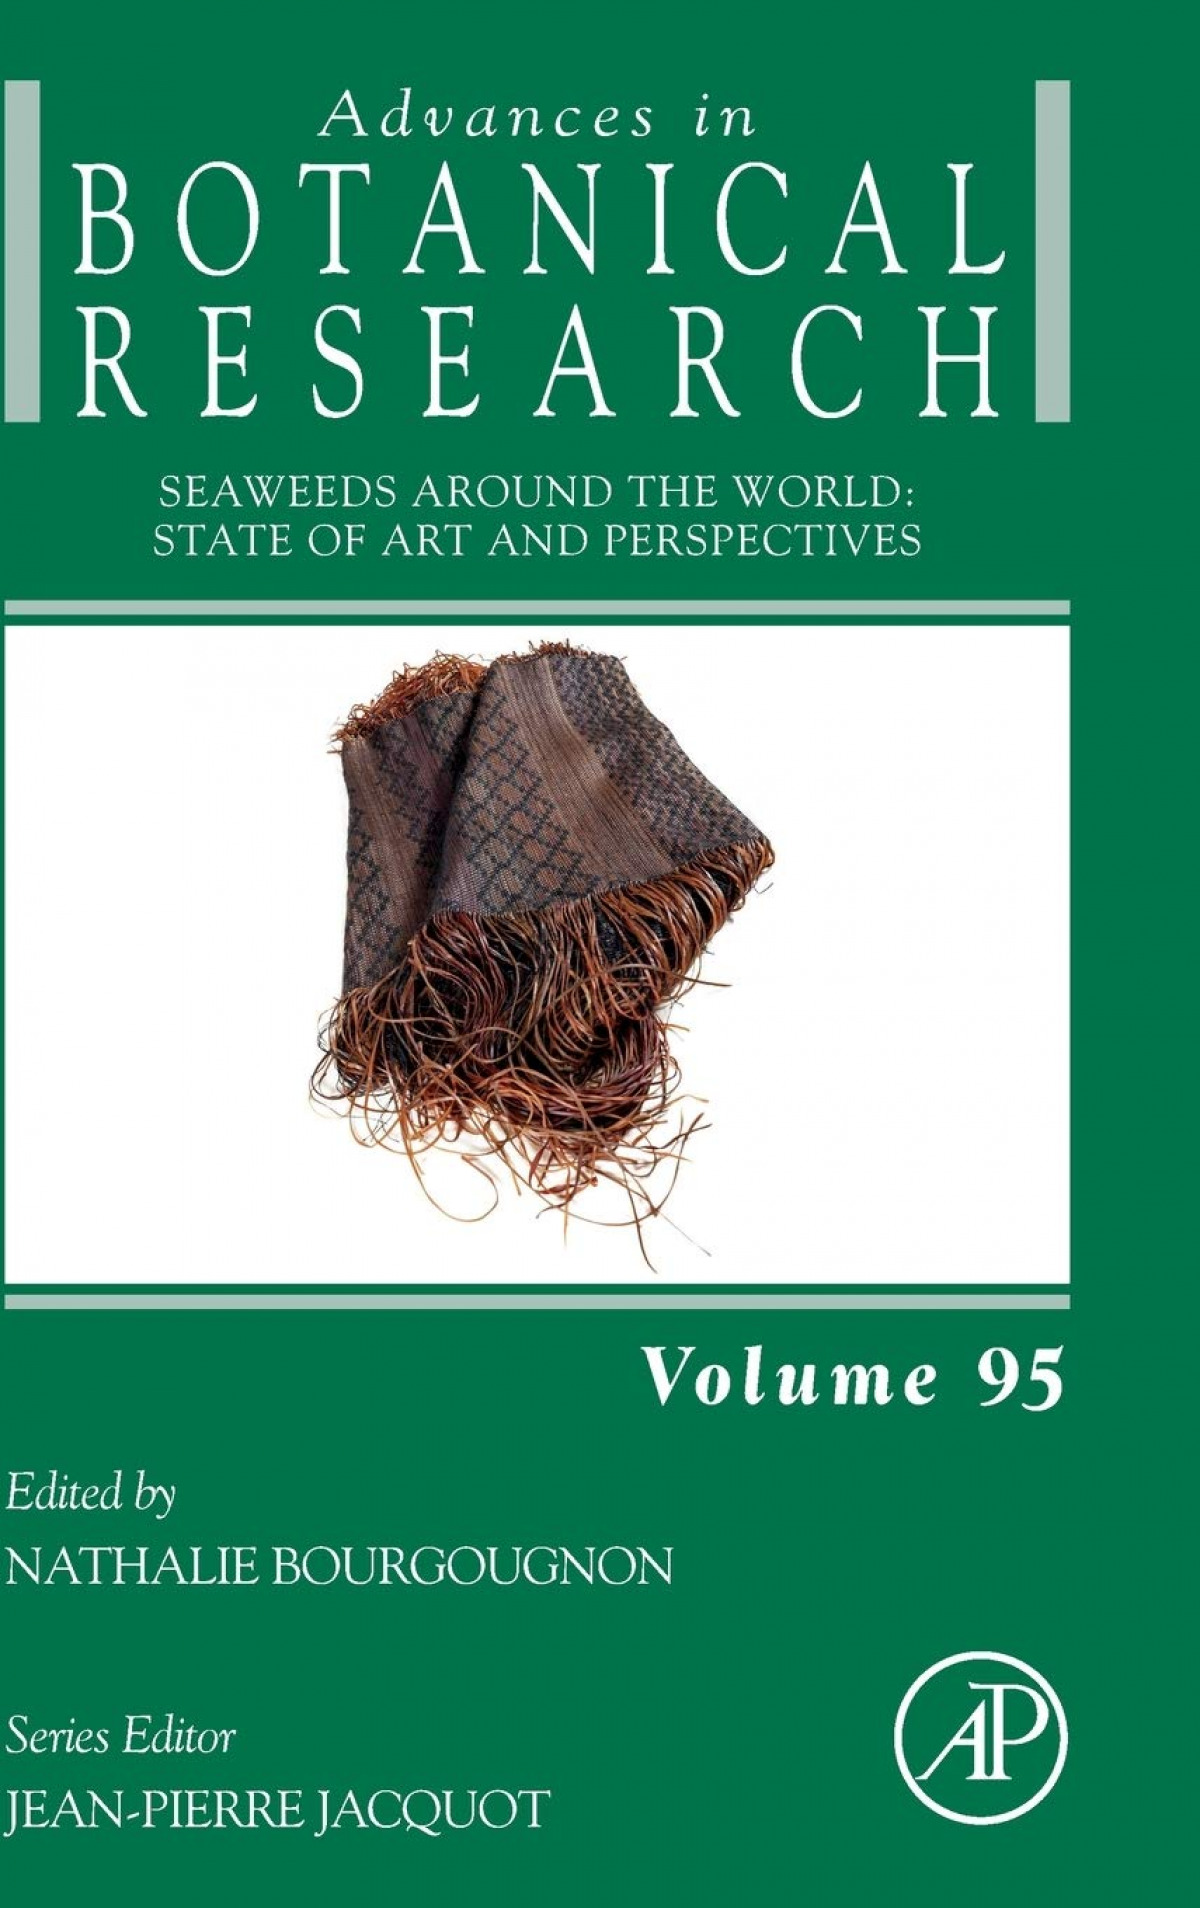 SEAWEEDS AROUND THE WORLD:STATE OF ART PERSPECTIVES VOL.95